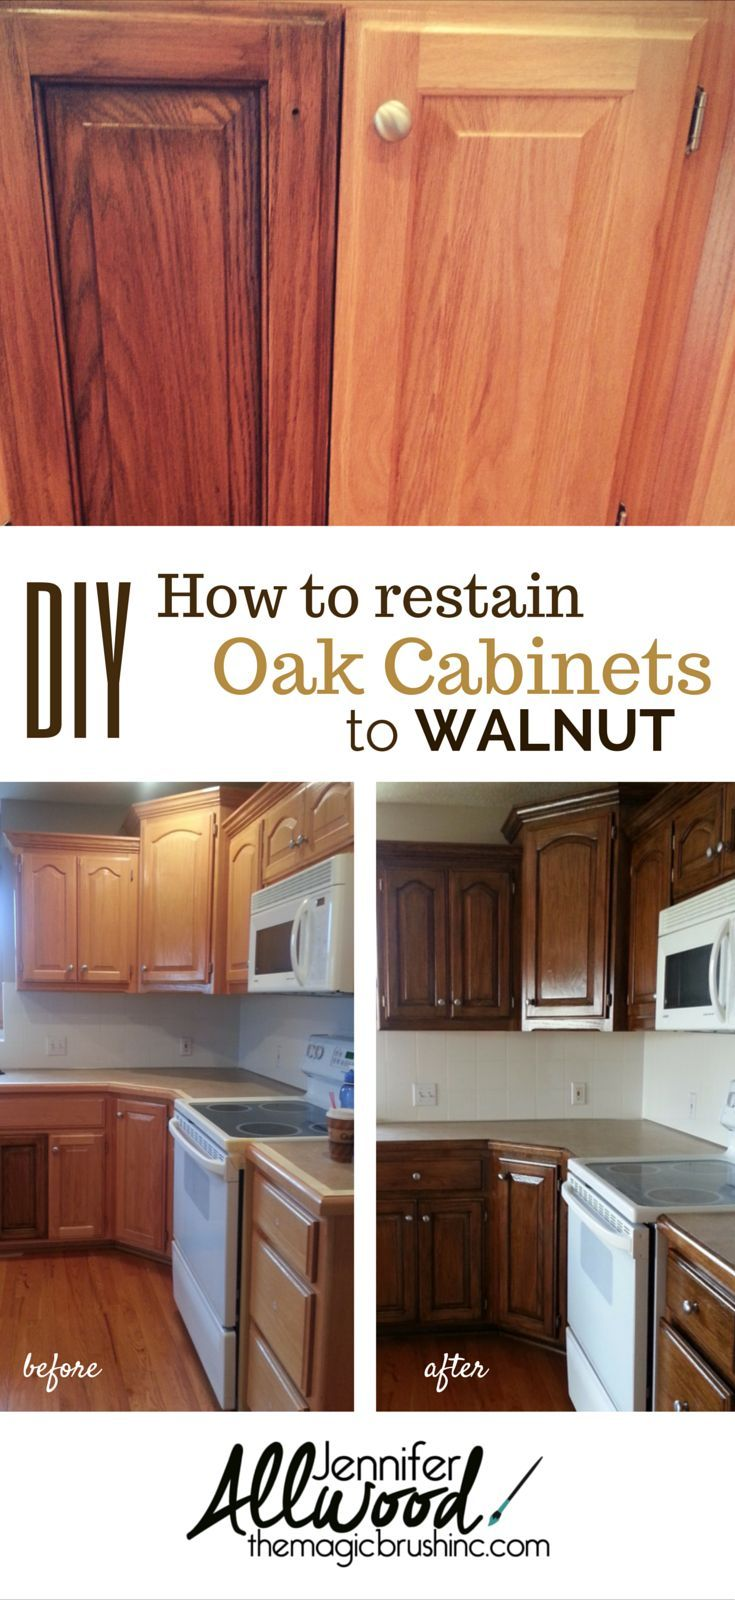 Cabinets and furniture finishes dark walnut stain for Dark oak kitchen cabinets